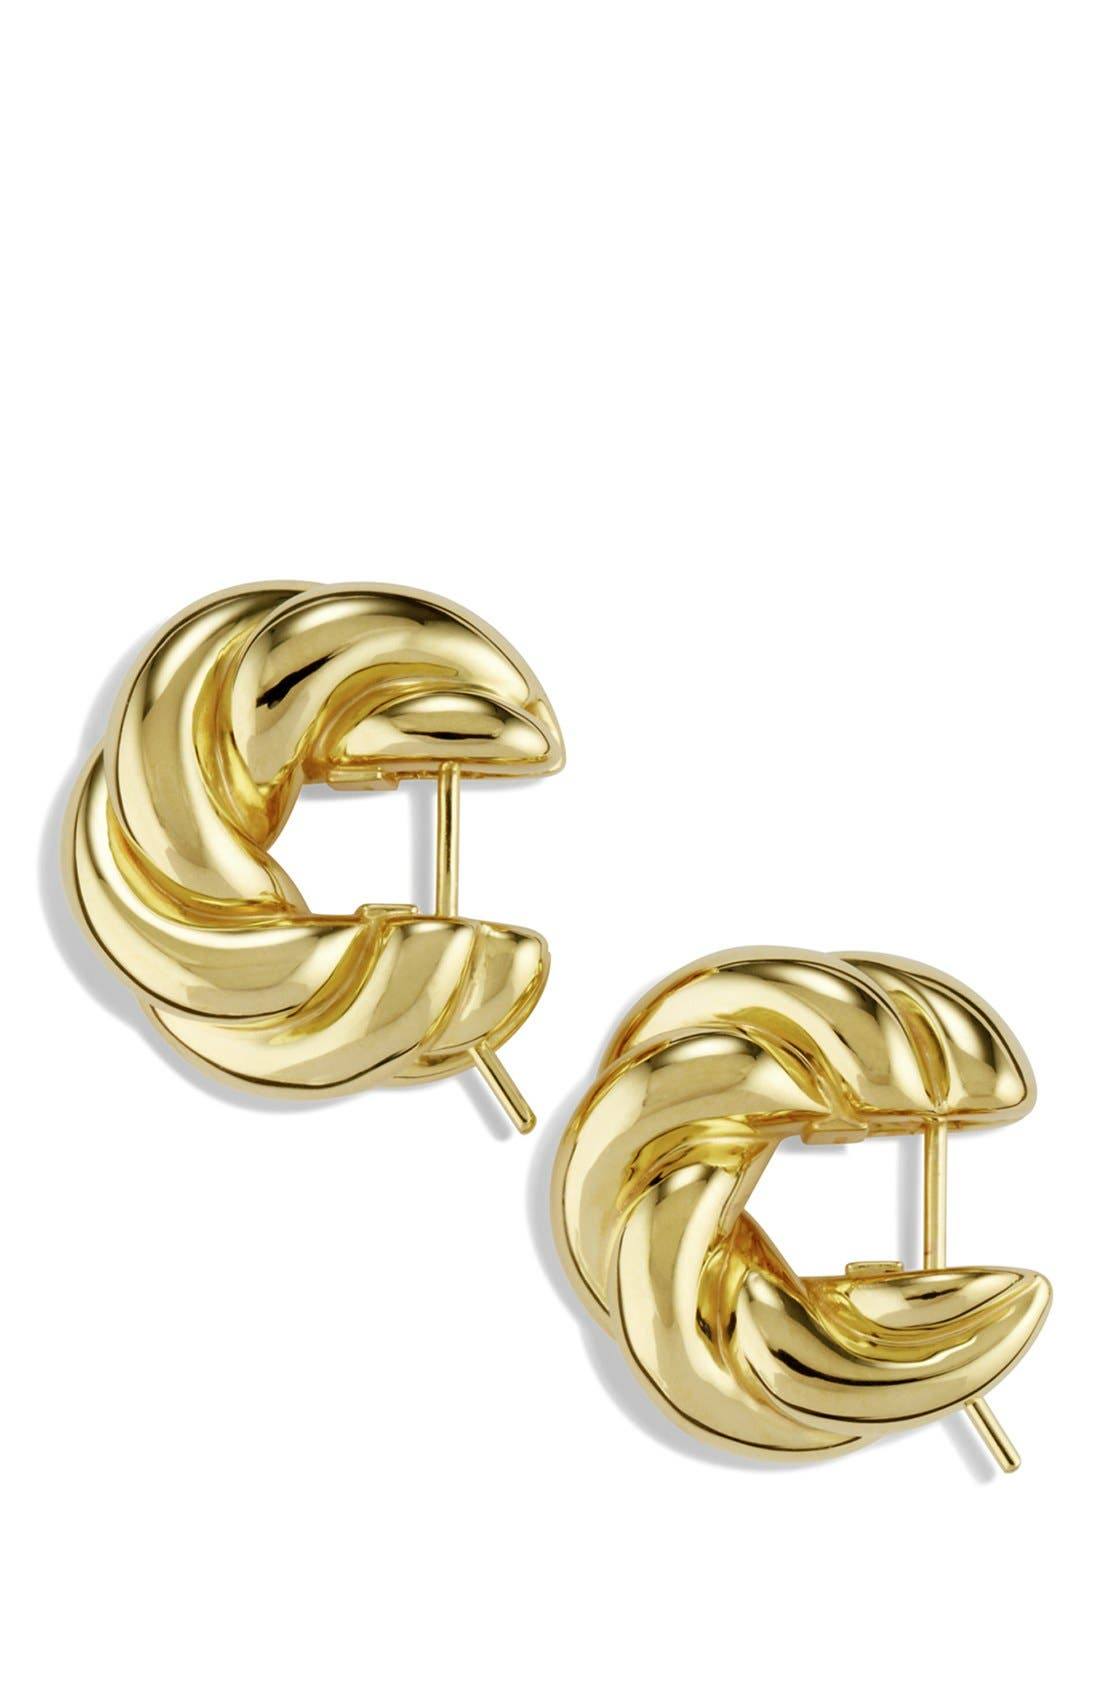 Alternate Image 2  - David Yurman 'Sculpted Cable' Small Earrings in Gold